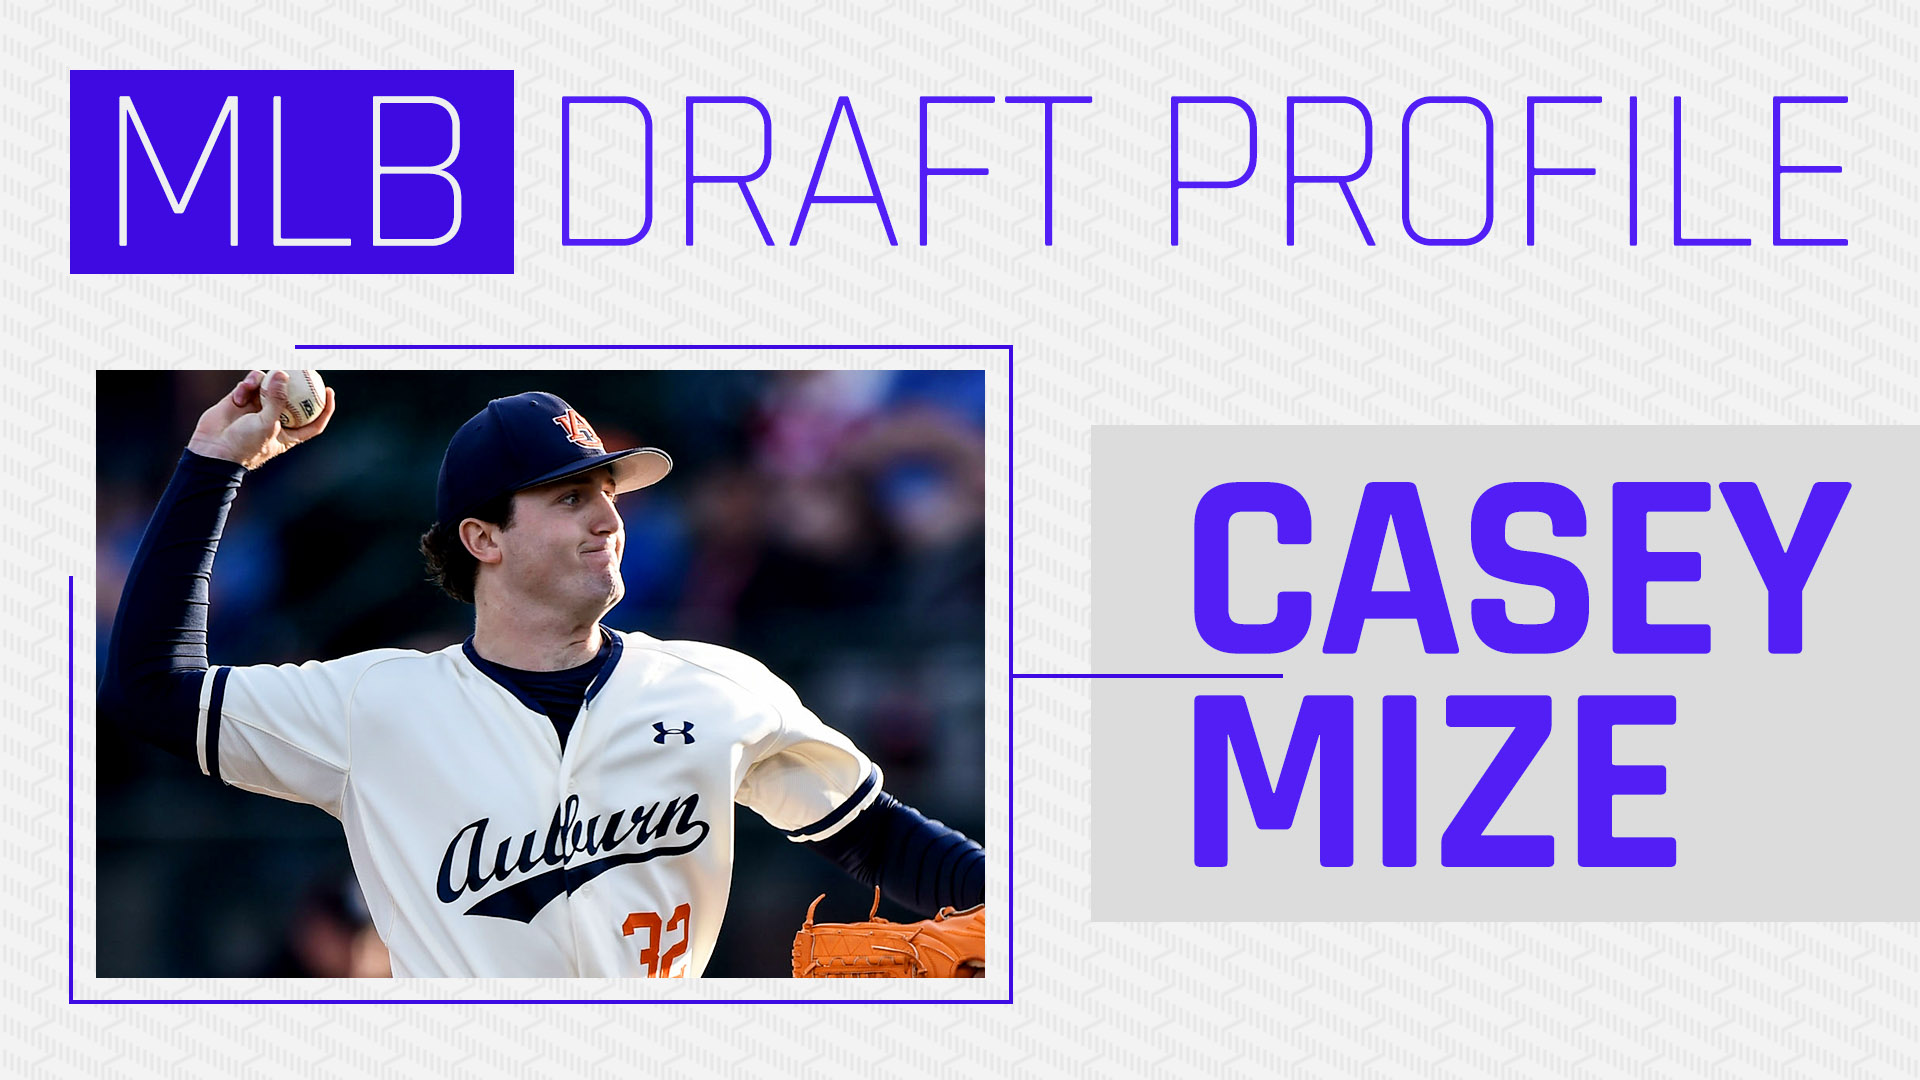 802437fd0 MLB Draft 2018: Tigers could find what they need with Casey Mize at No. 1 |  Sporting News